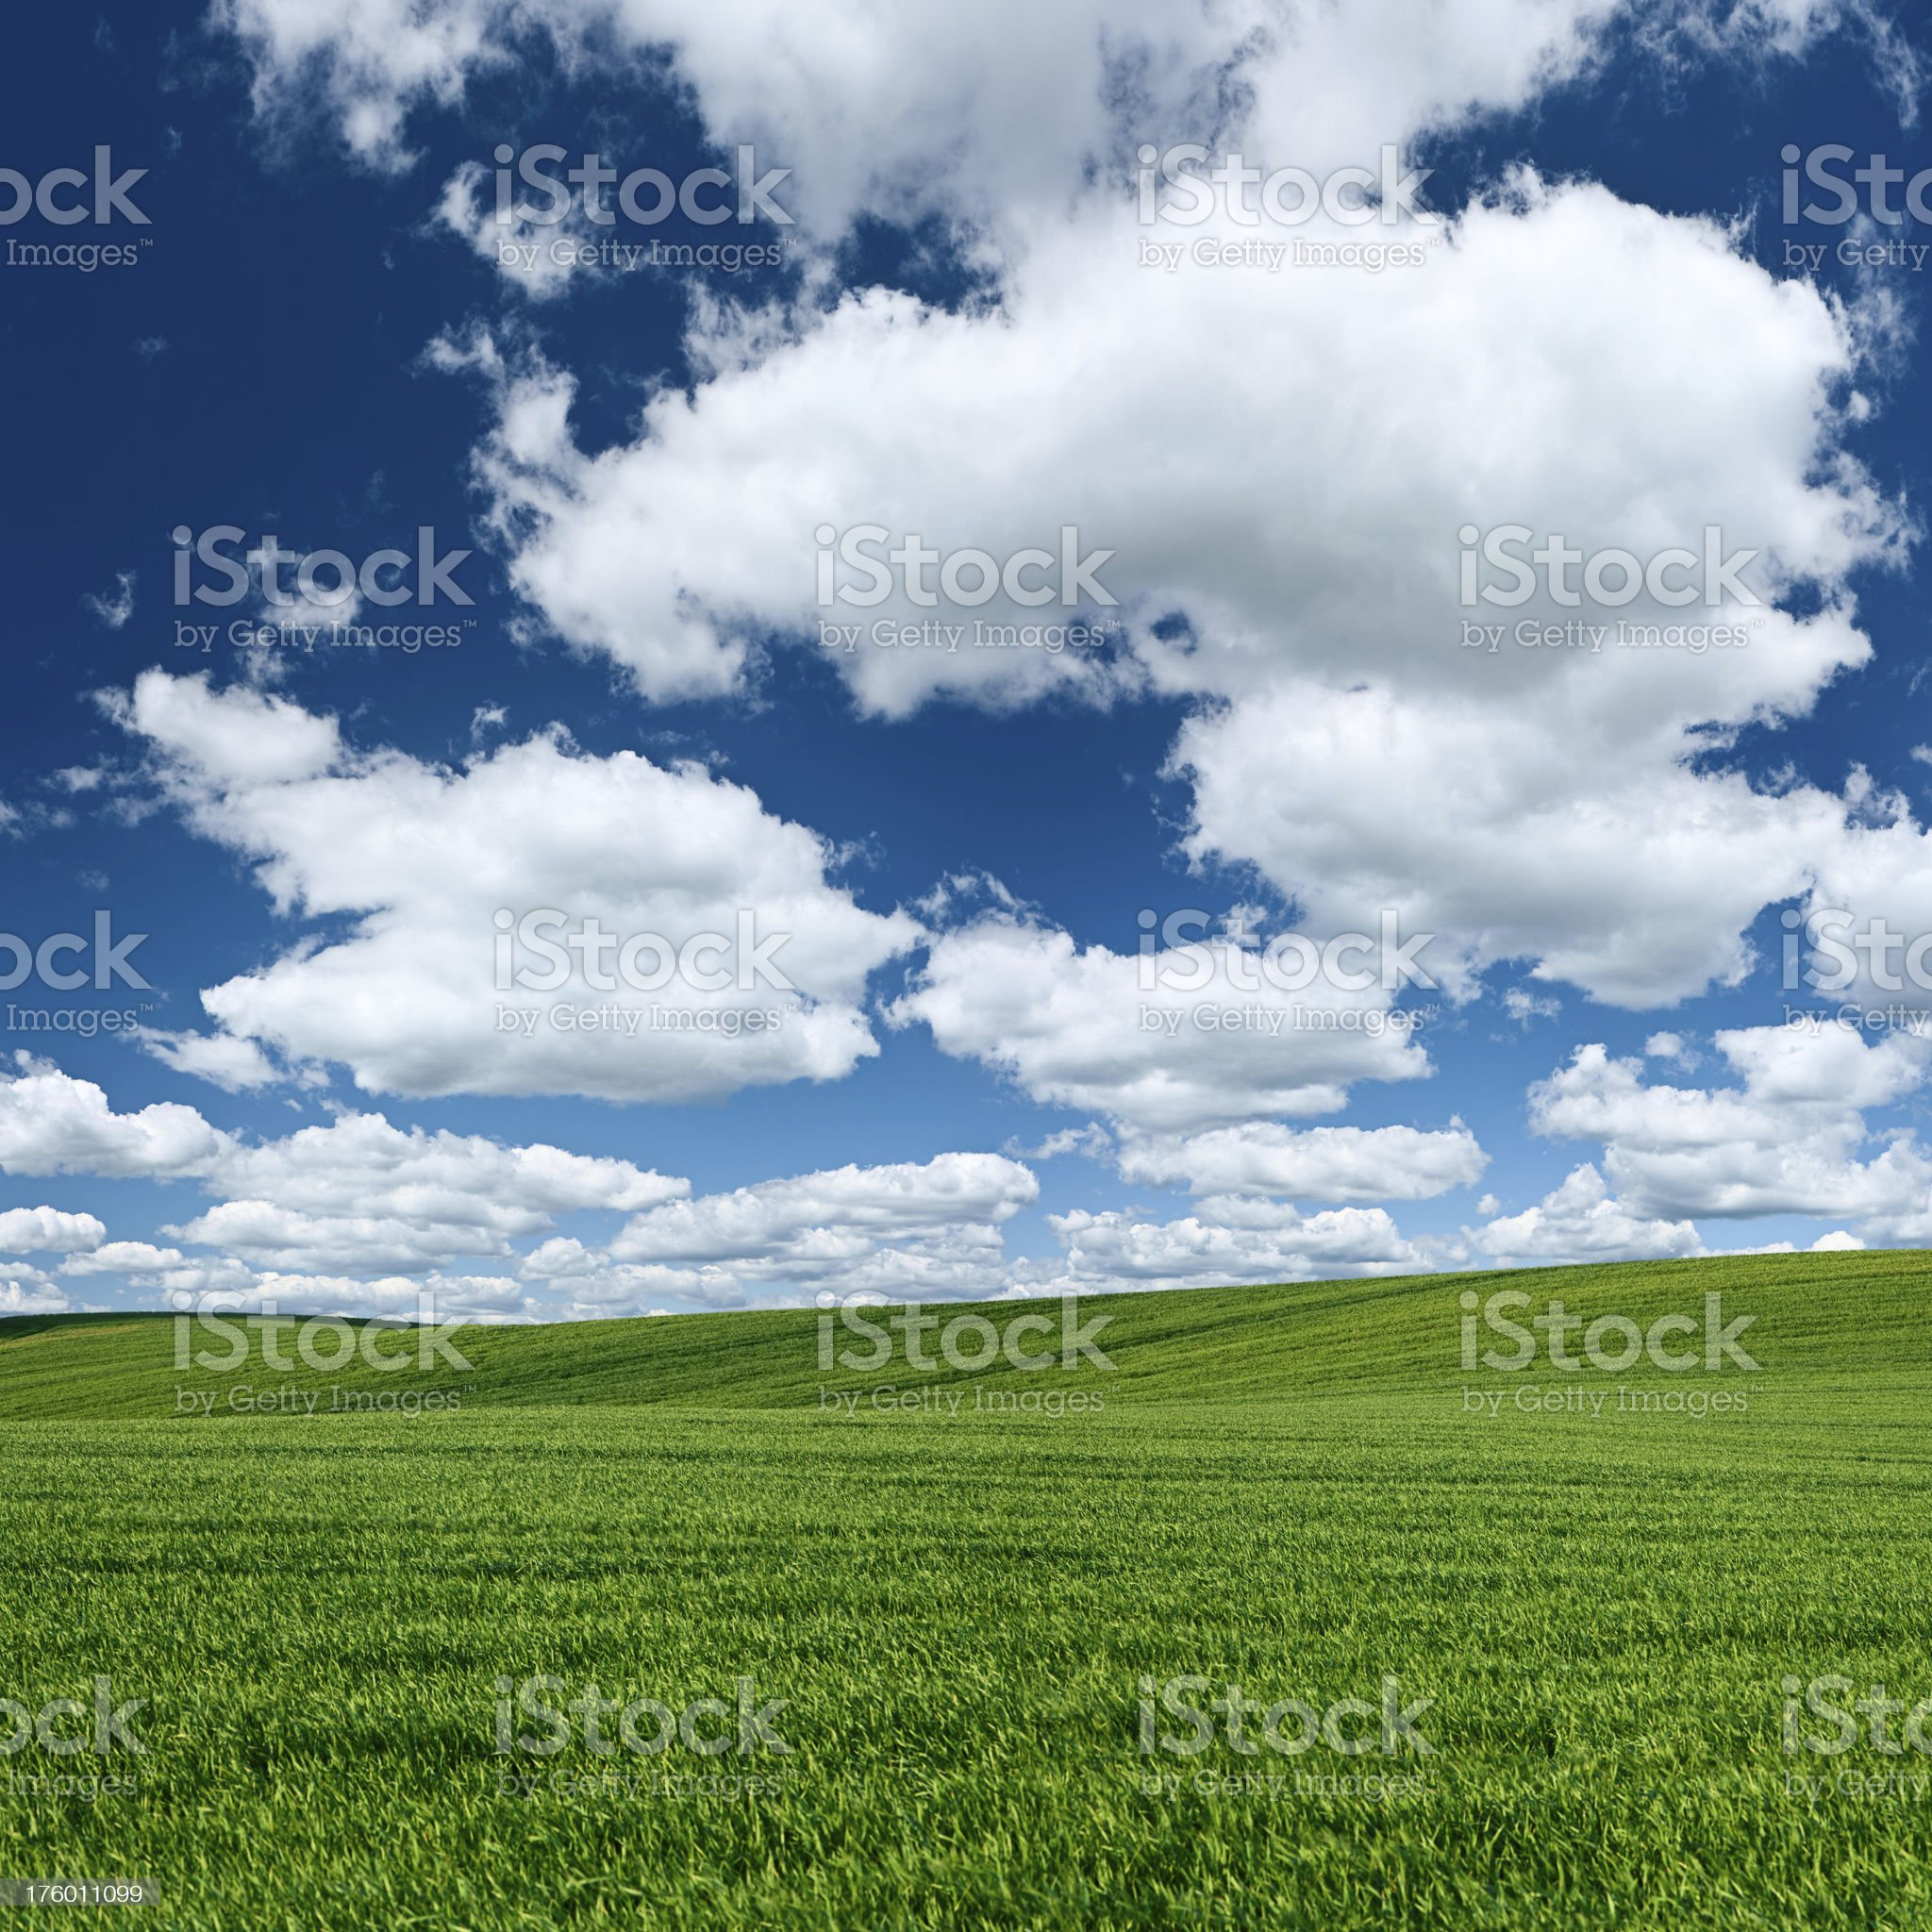 Square spring landscape 75MPix XXXXL - meadow, blue sky royalty-free stock photo